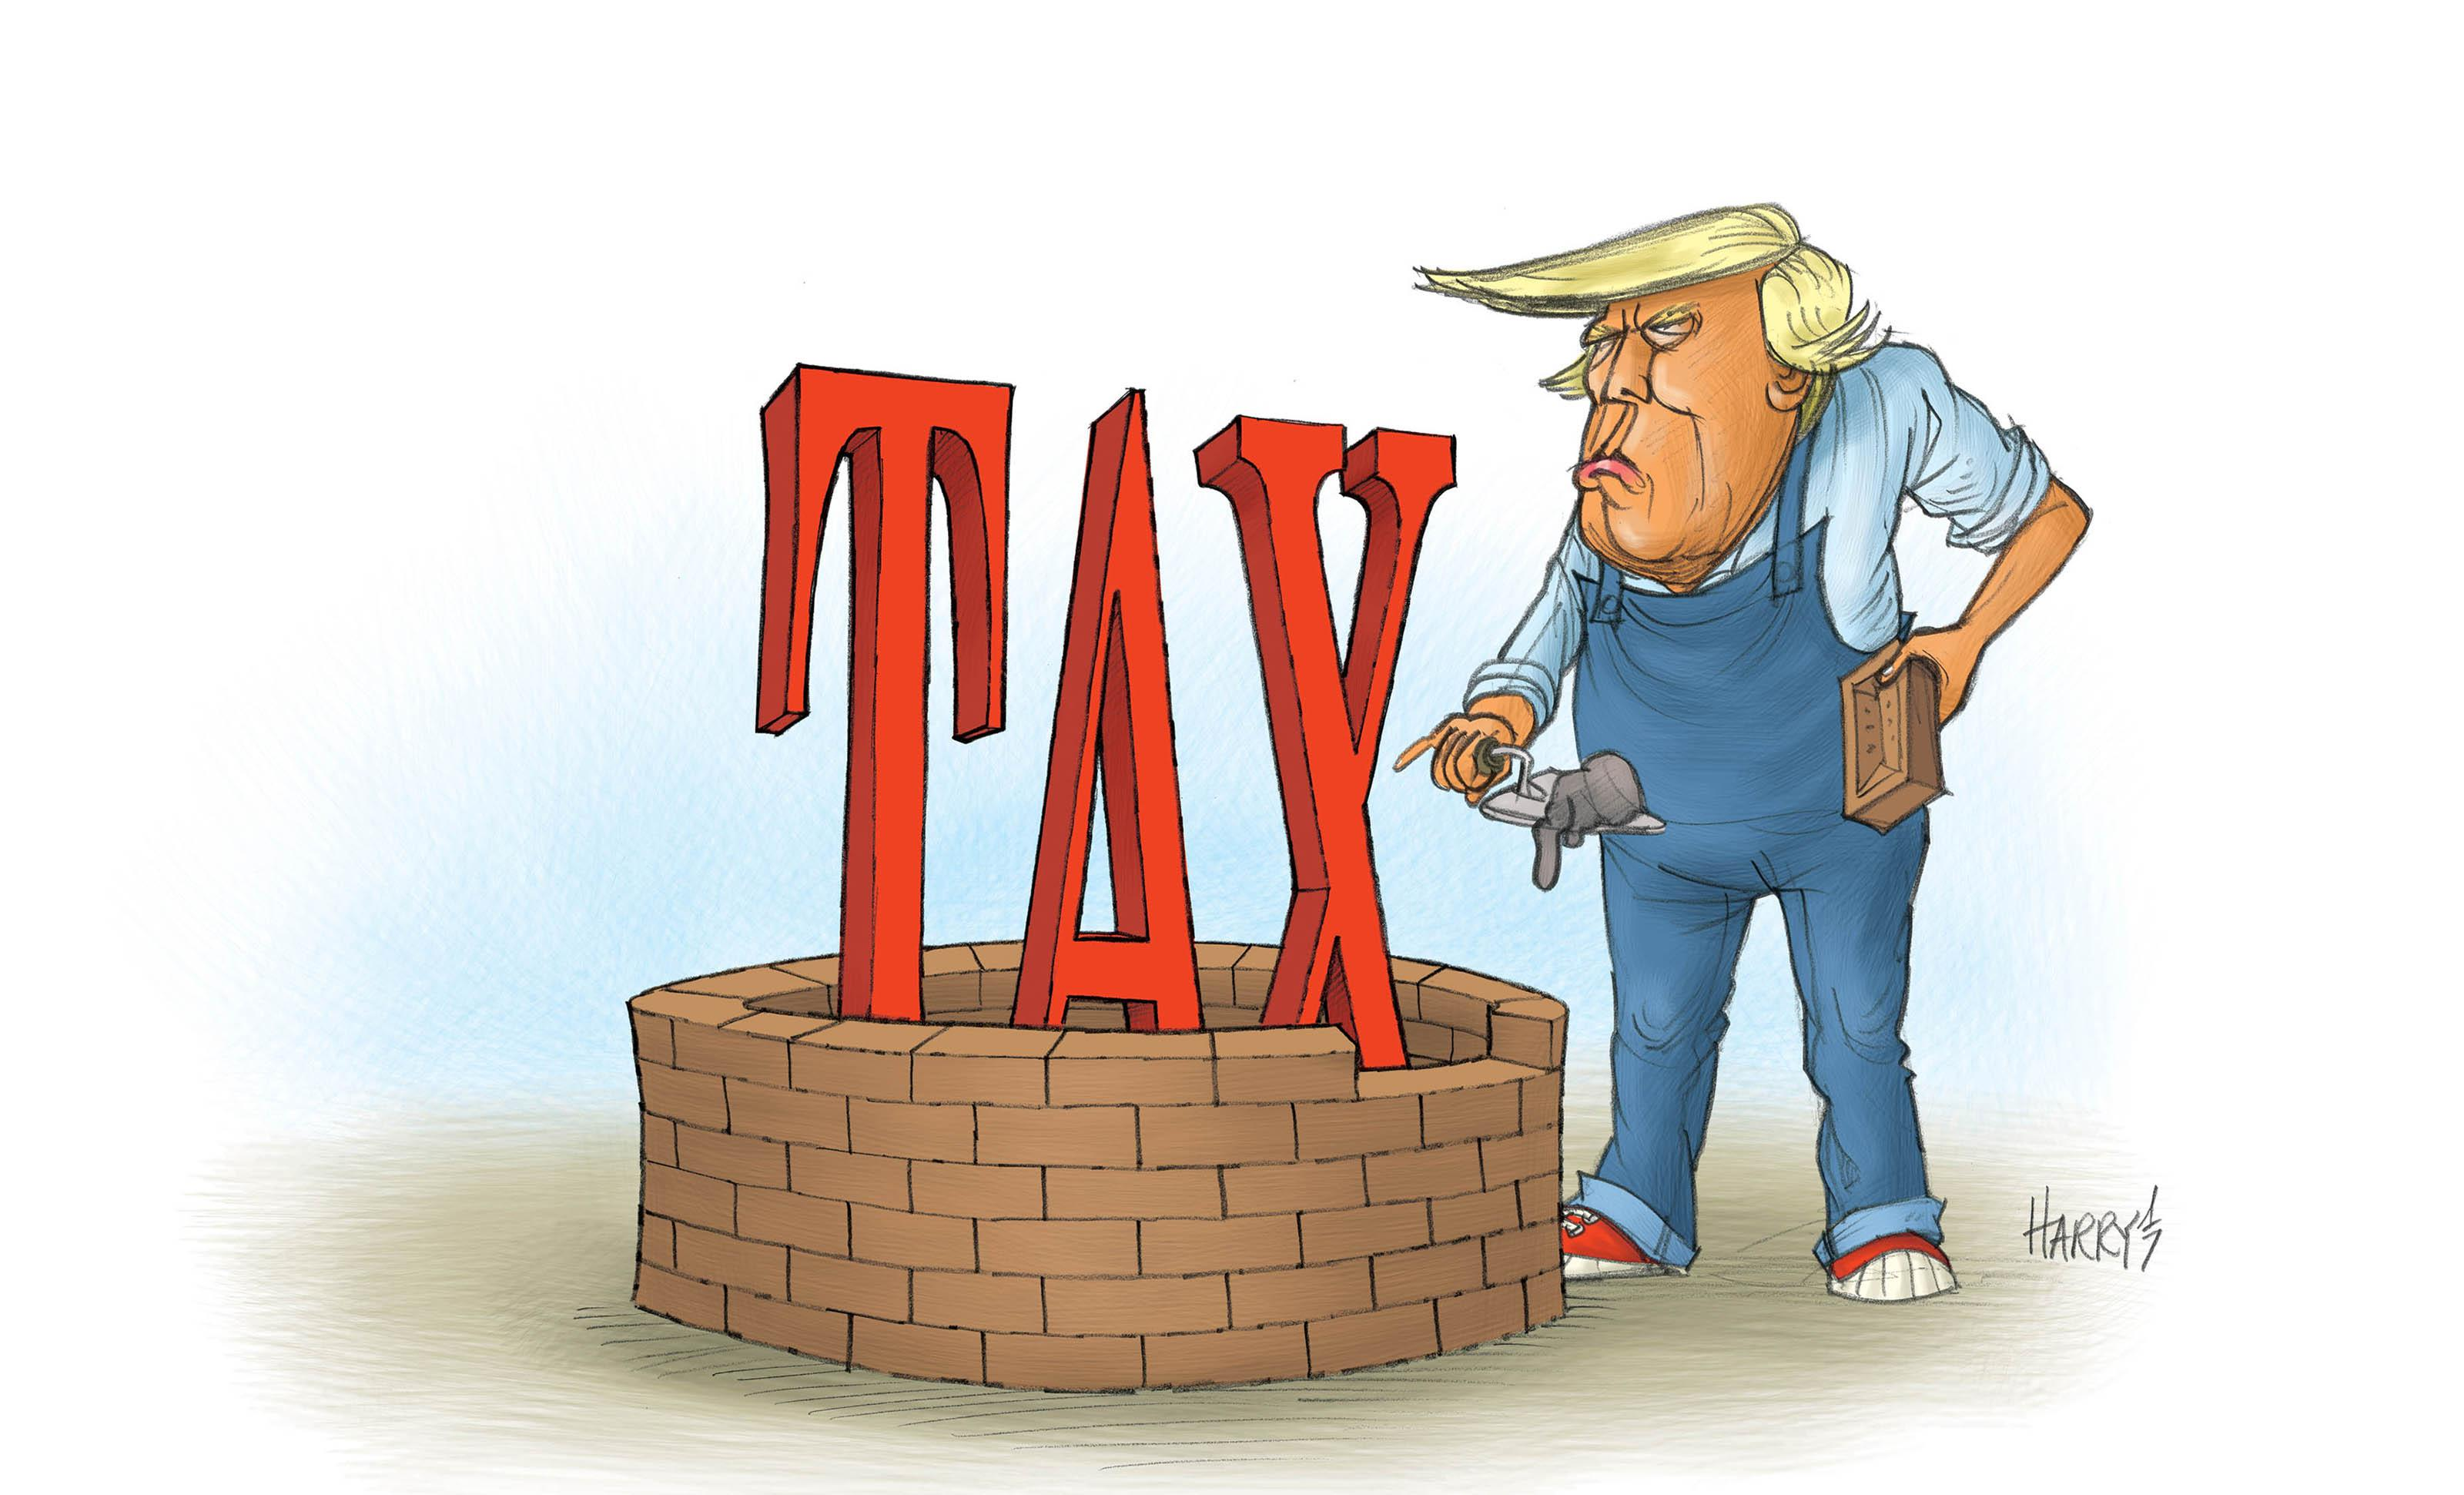 Trump's first 100 days to include tax reform